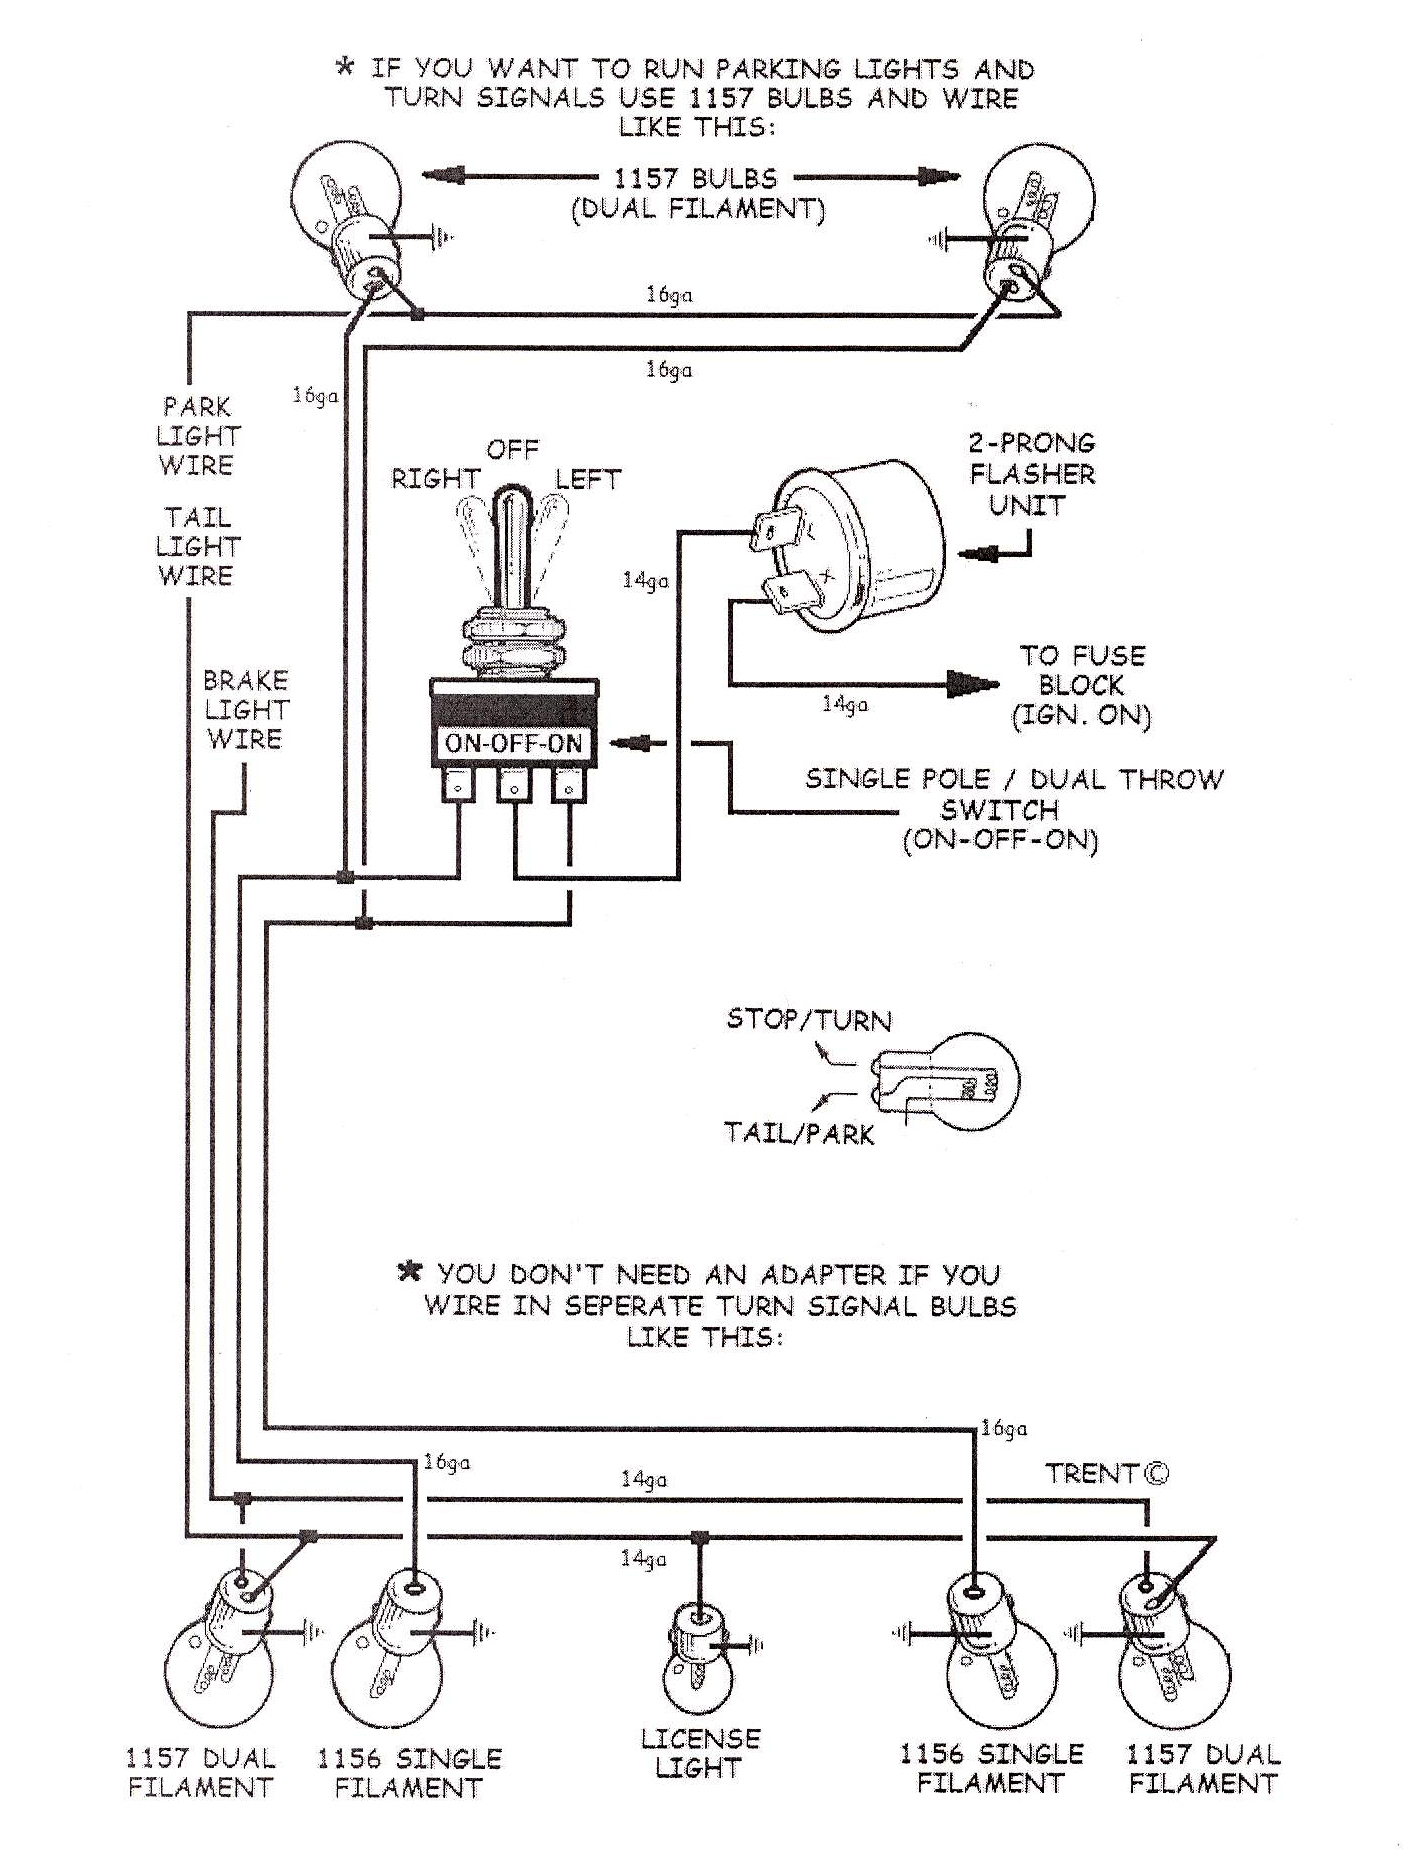 1968 camaro starter wiring diagram html with Ft 3078 Tech Tips on 2453751 Mid Year 63 Dash Wiring Harness Install additionally 828011 01 Trans Am Wiring Schematic together with Chevrolet Chevelle 5 7 1979 Specs And Images together with 3192954 Starter Question On A 78 A also 6ds01 Hello I Replaced 4 3l Engine 93 Searay New.